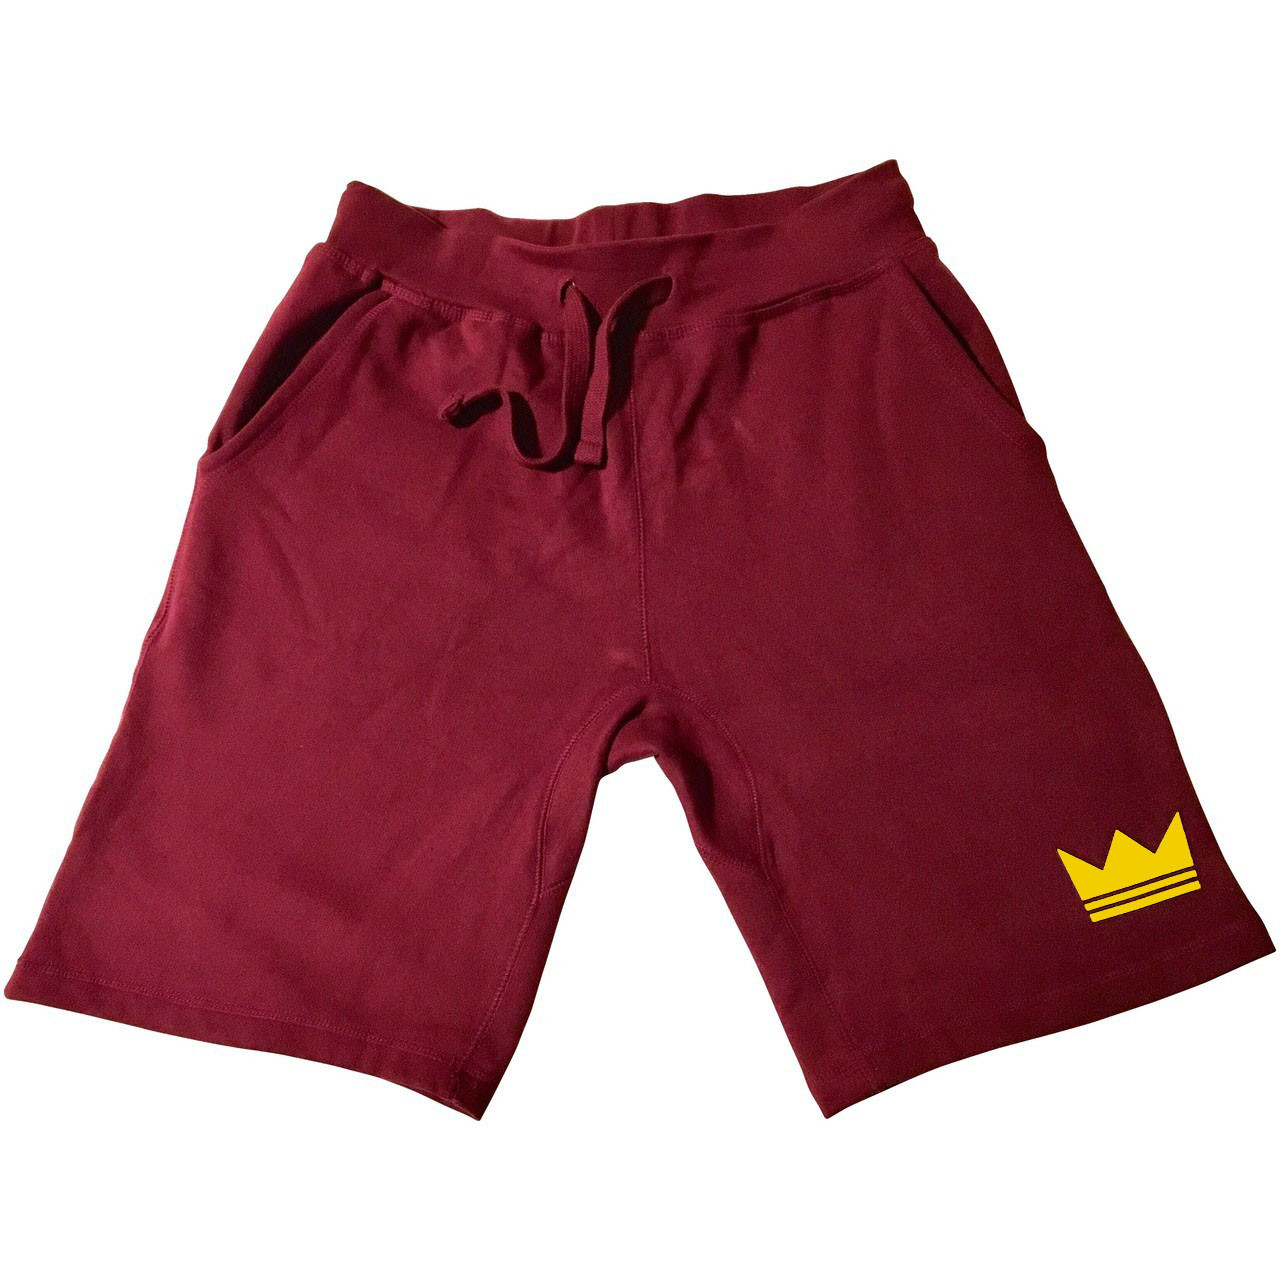 Onecrown Burgundy Jogger Shorts, Christian Streetwear Clothing